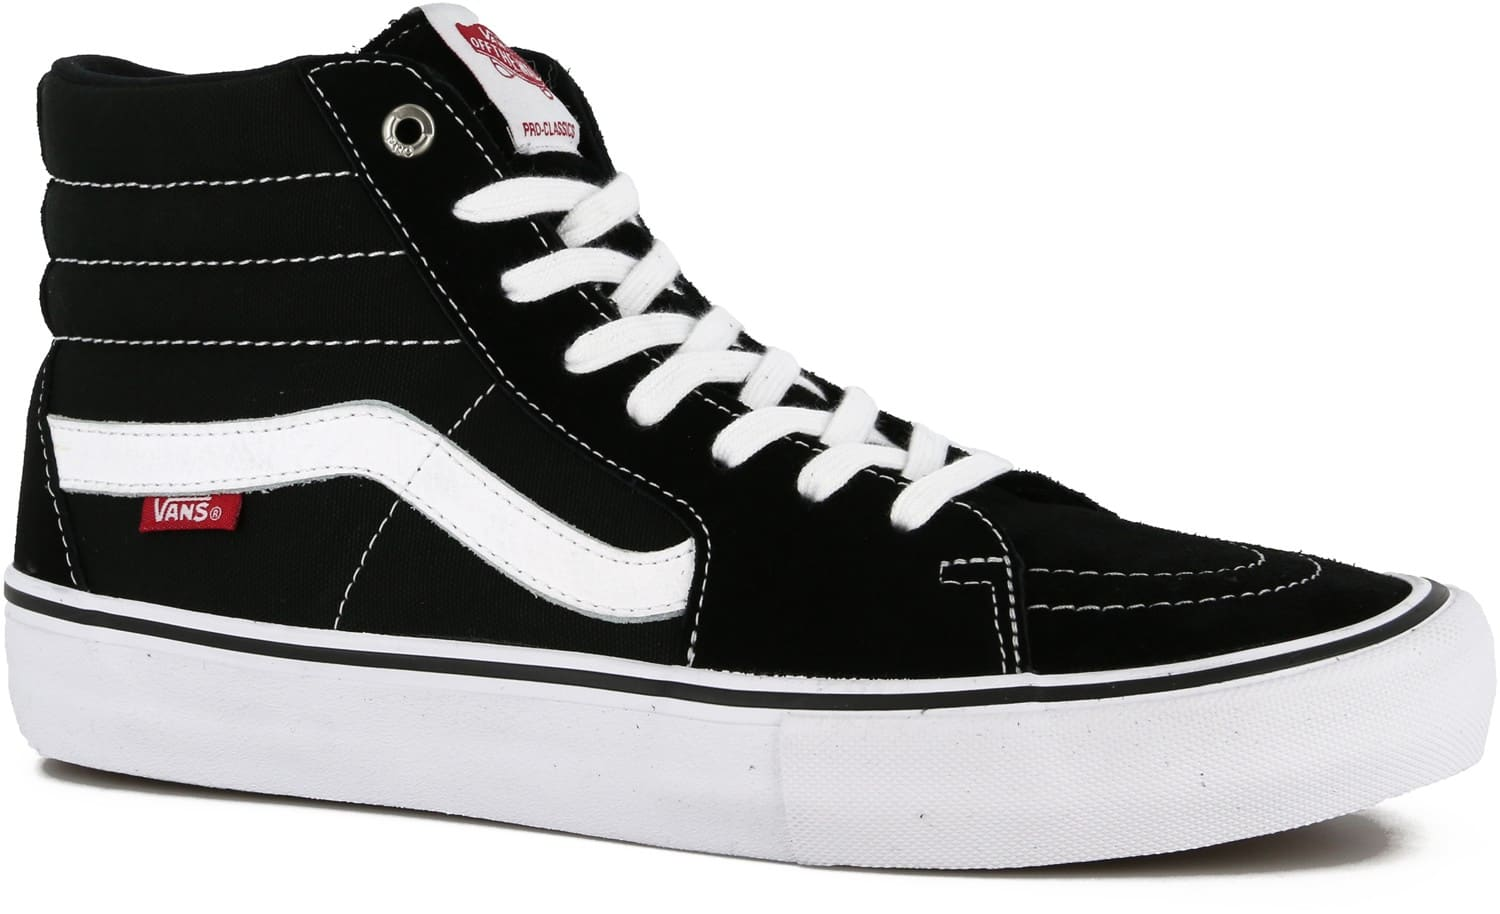 Vans  Pro Skate Shoes Review